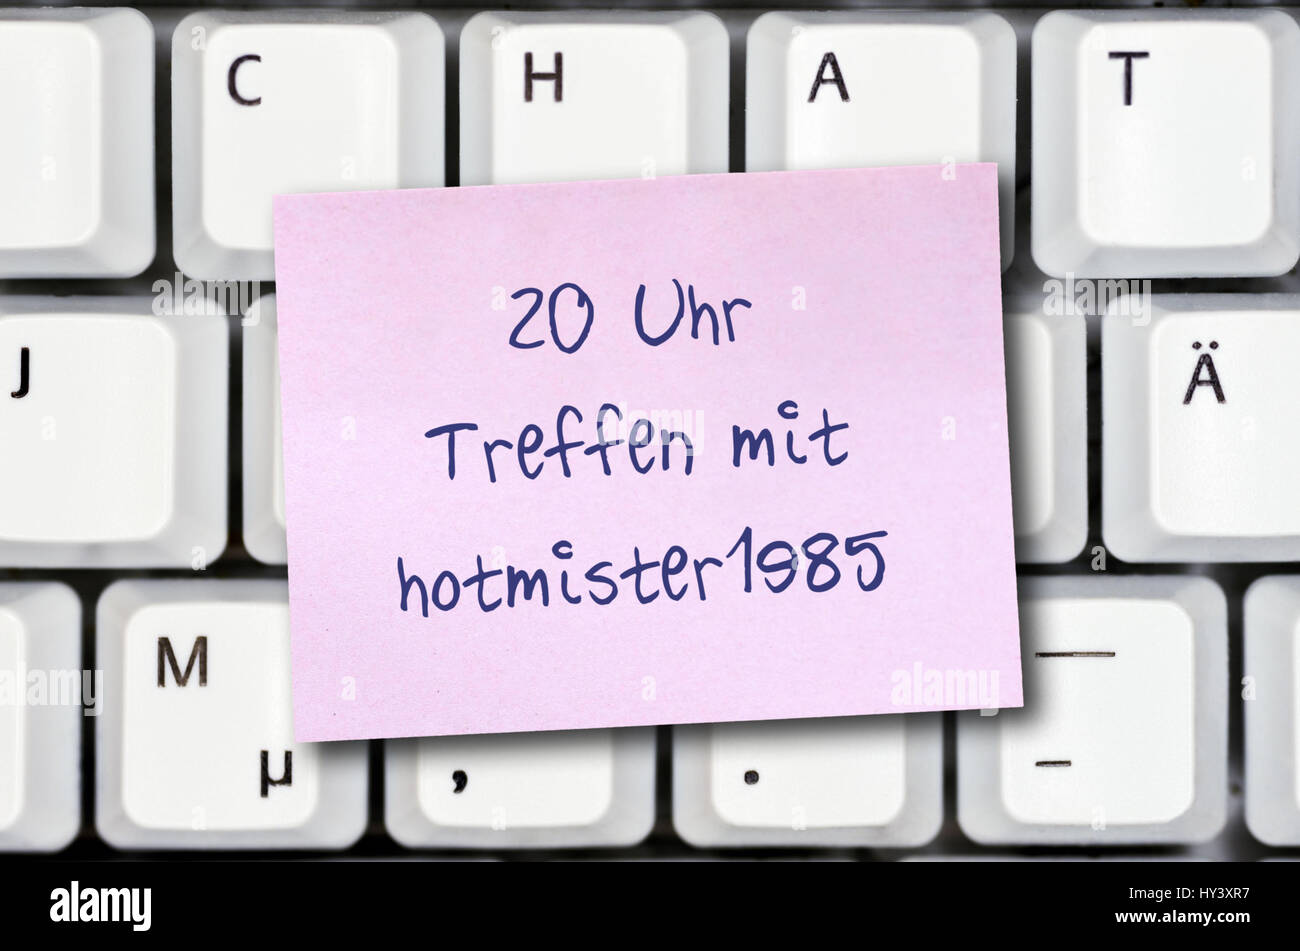 Slip of paper on a computer keyboard, meeting with acquaintance from on-line chat, Zettel auf einer Computertastatur, - Stock Image